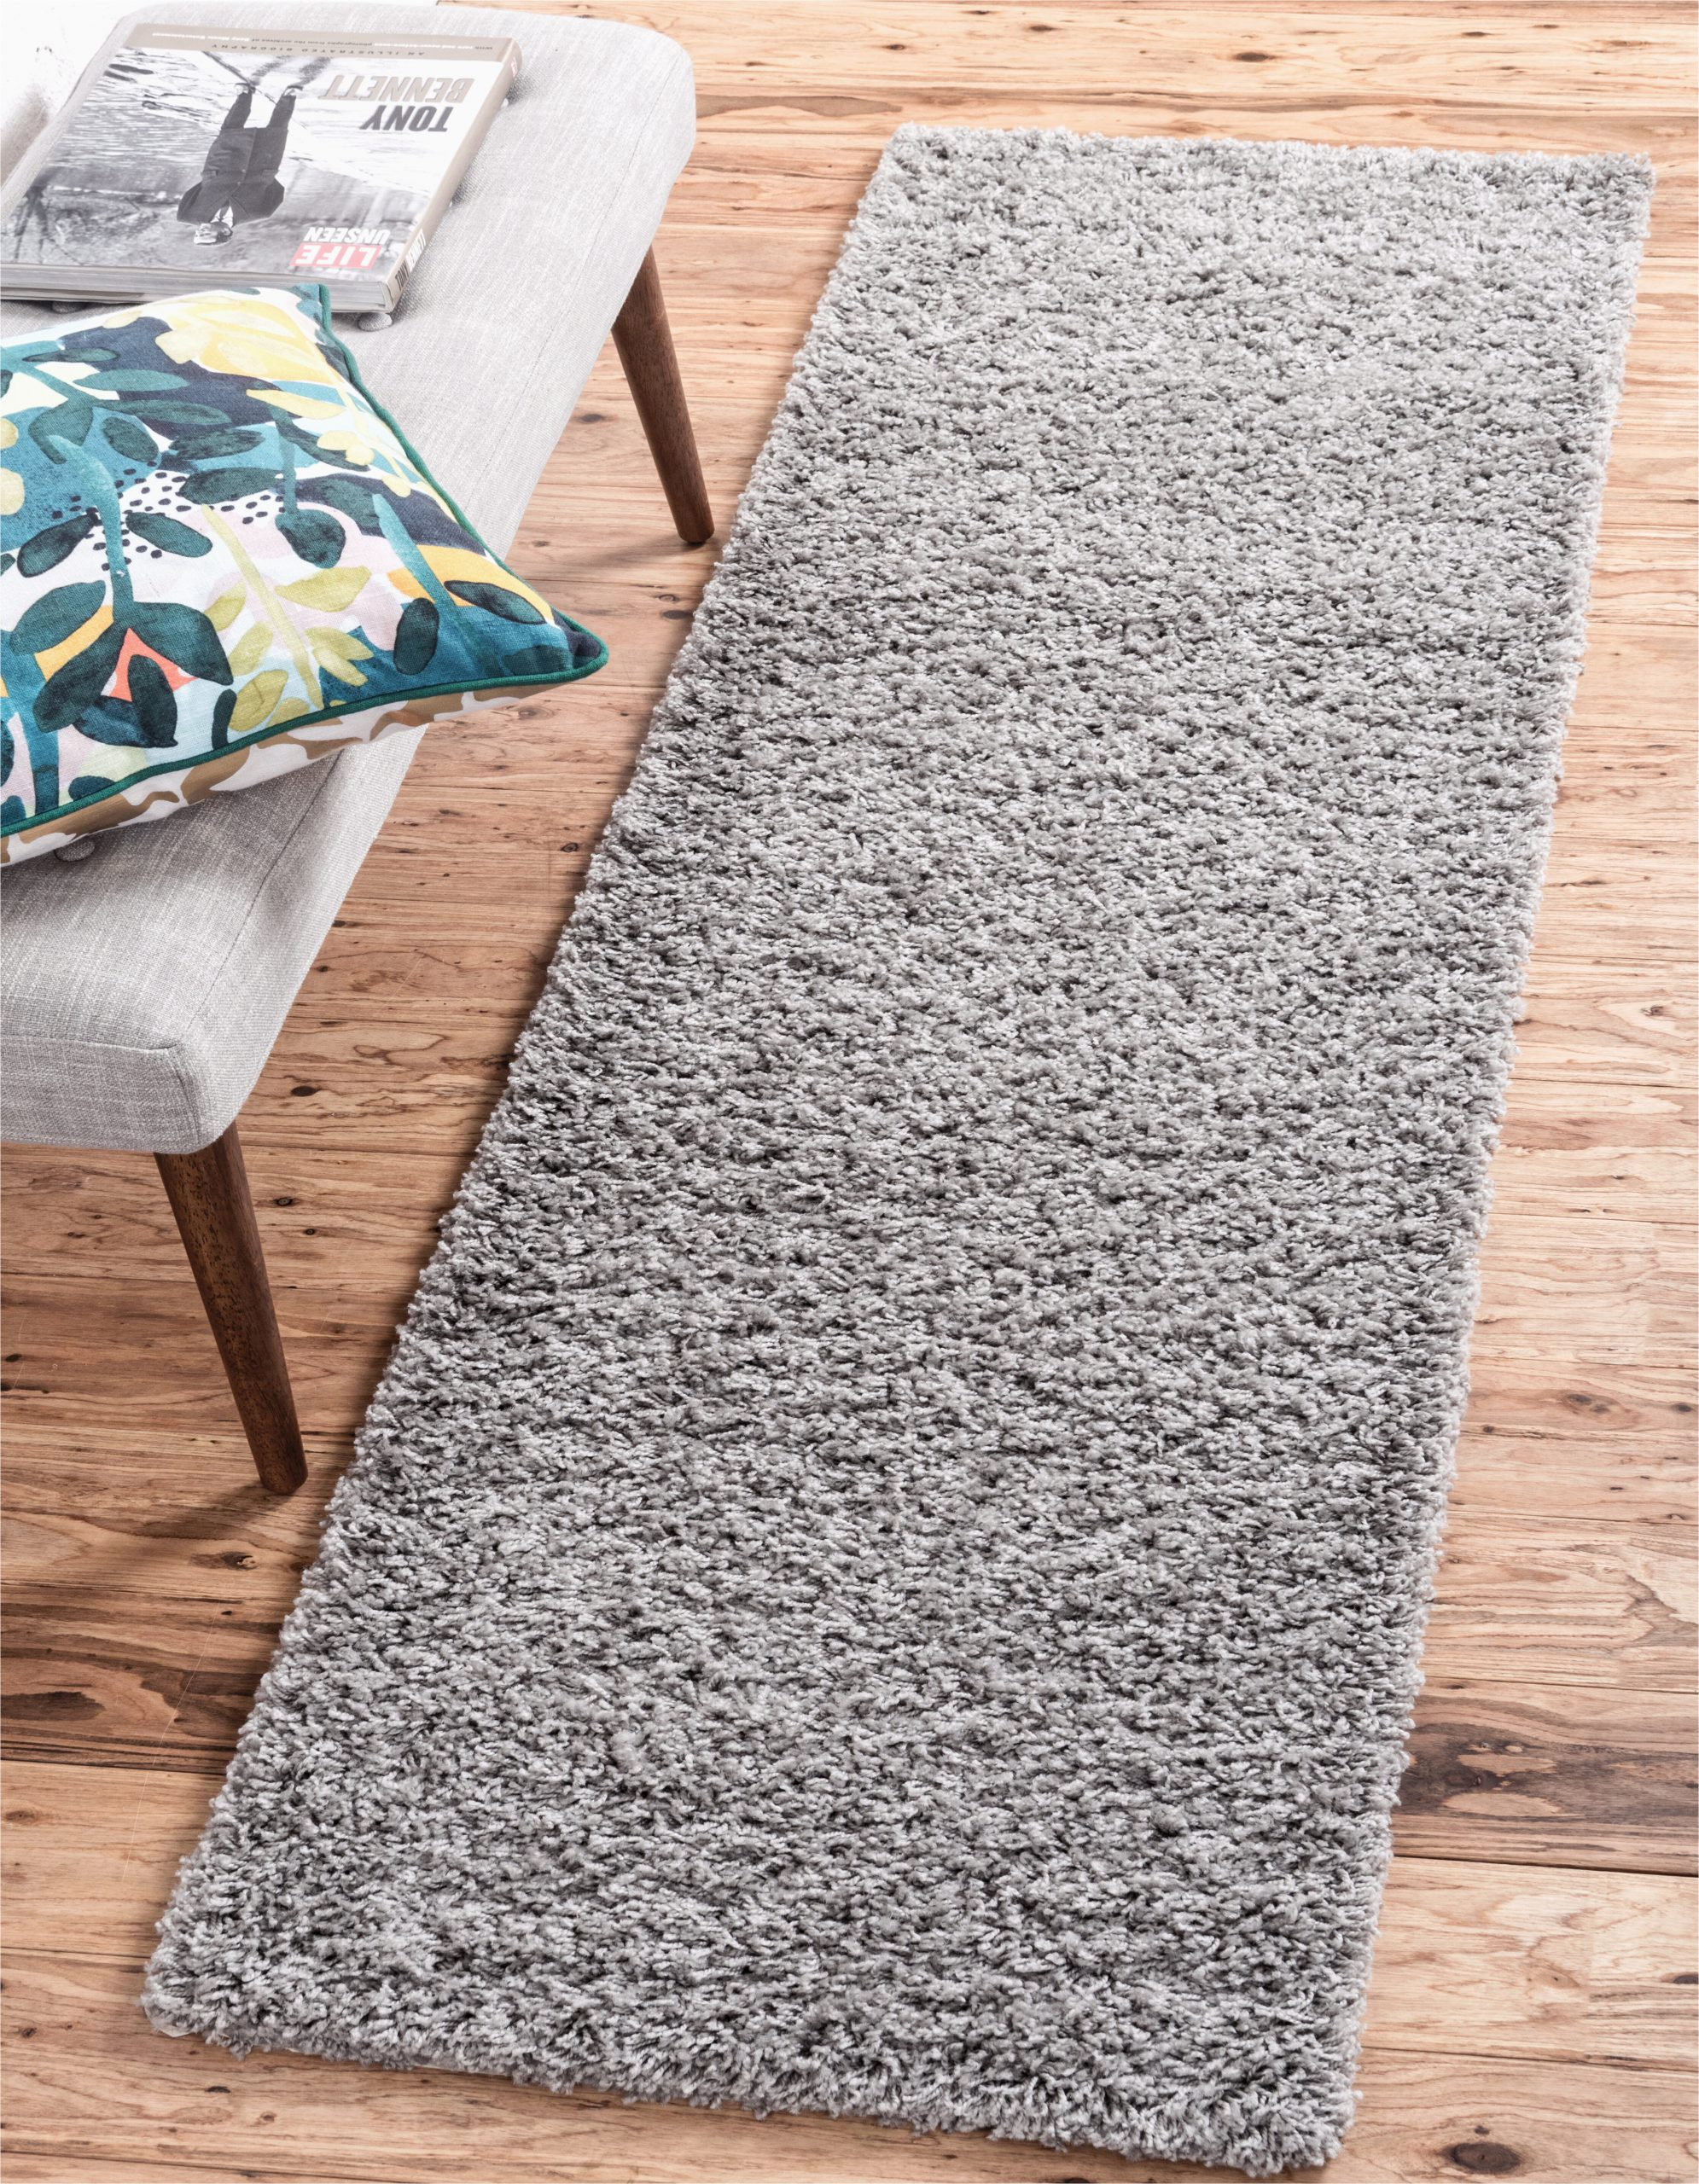 andover mills lilah shag gray area rug ando7420 piid= &category= &placement=1&slot=0&sponsoredid= d25b69a4c24e14b9d63e8f dbc0b0da2e1e92a52e dbc& txid=I/WEwl0E0ZY0SQsSoPeEAg==